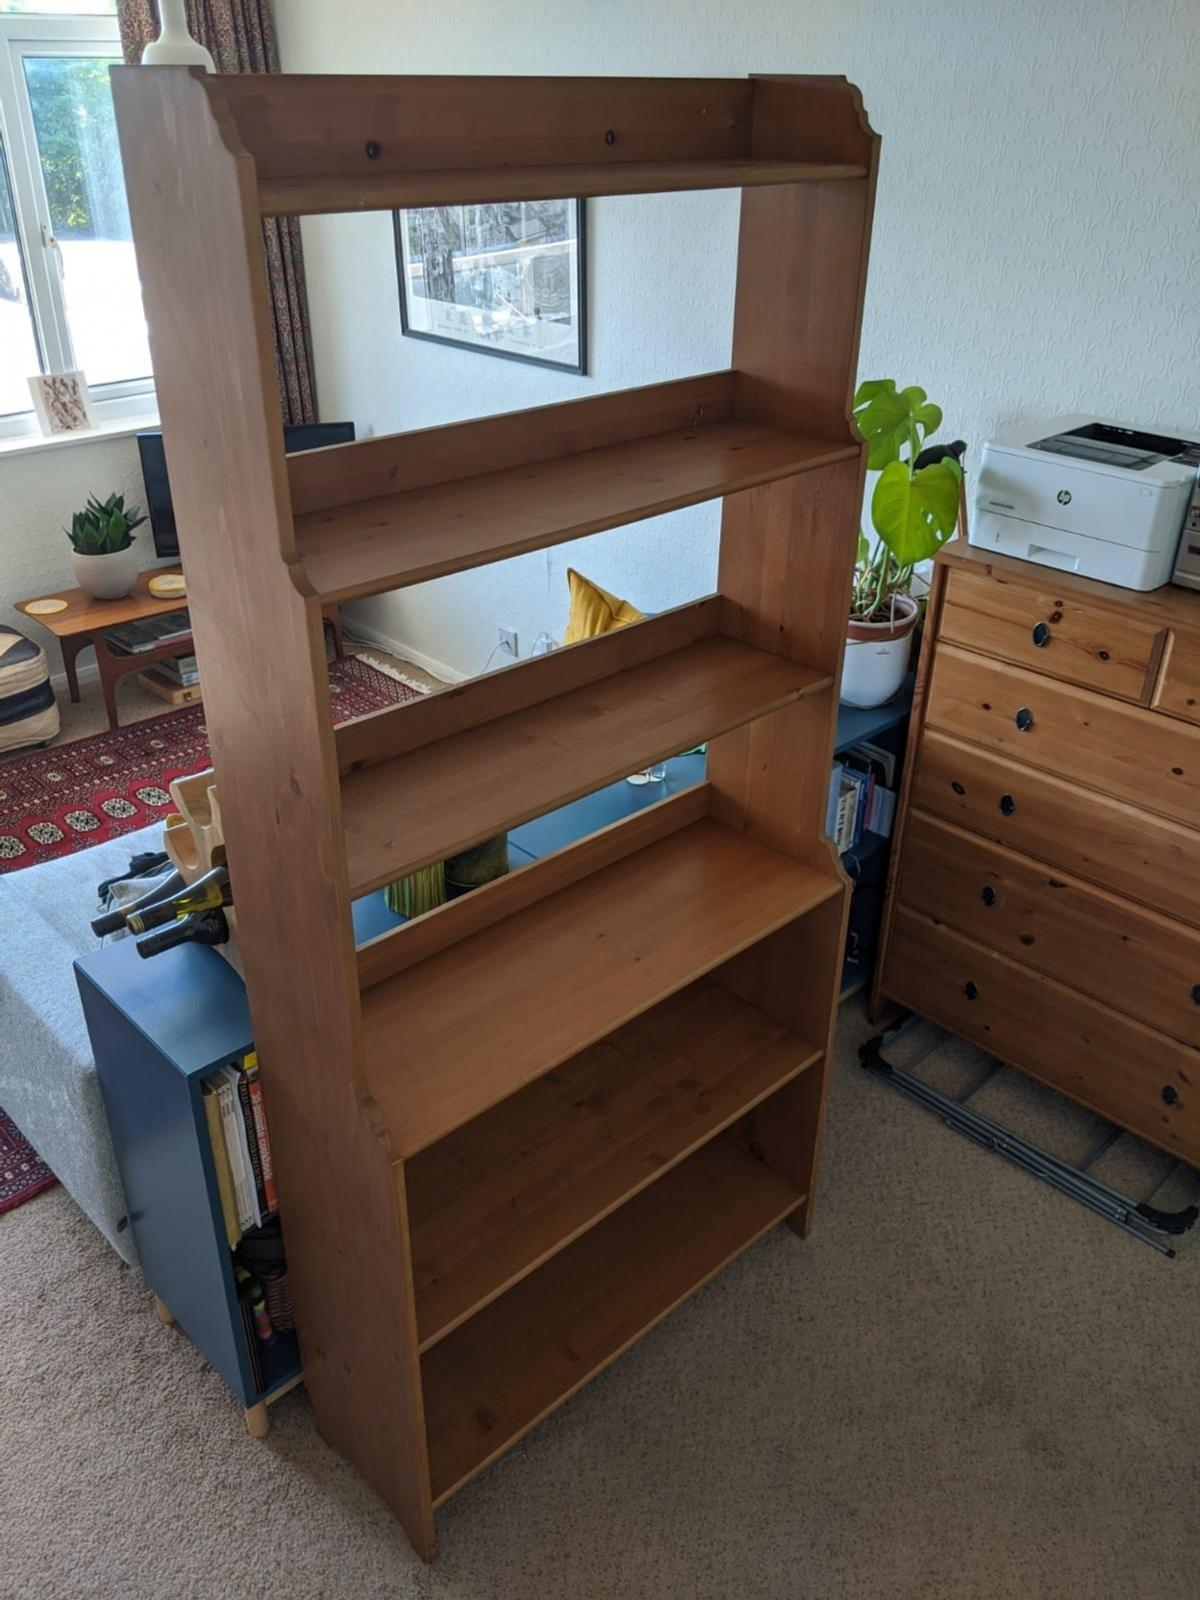 IKEA Leksvik solid pine bookcase with 6 shelves. In very good condition. Useful for filing and storage as well as books.  Dimensions:W: 93cmD: 32cmH: 198cm  Collection only but social distancing will be observed.